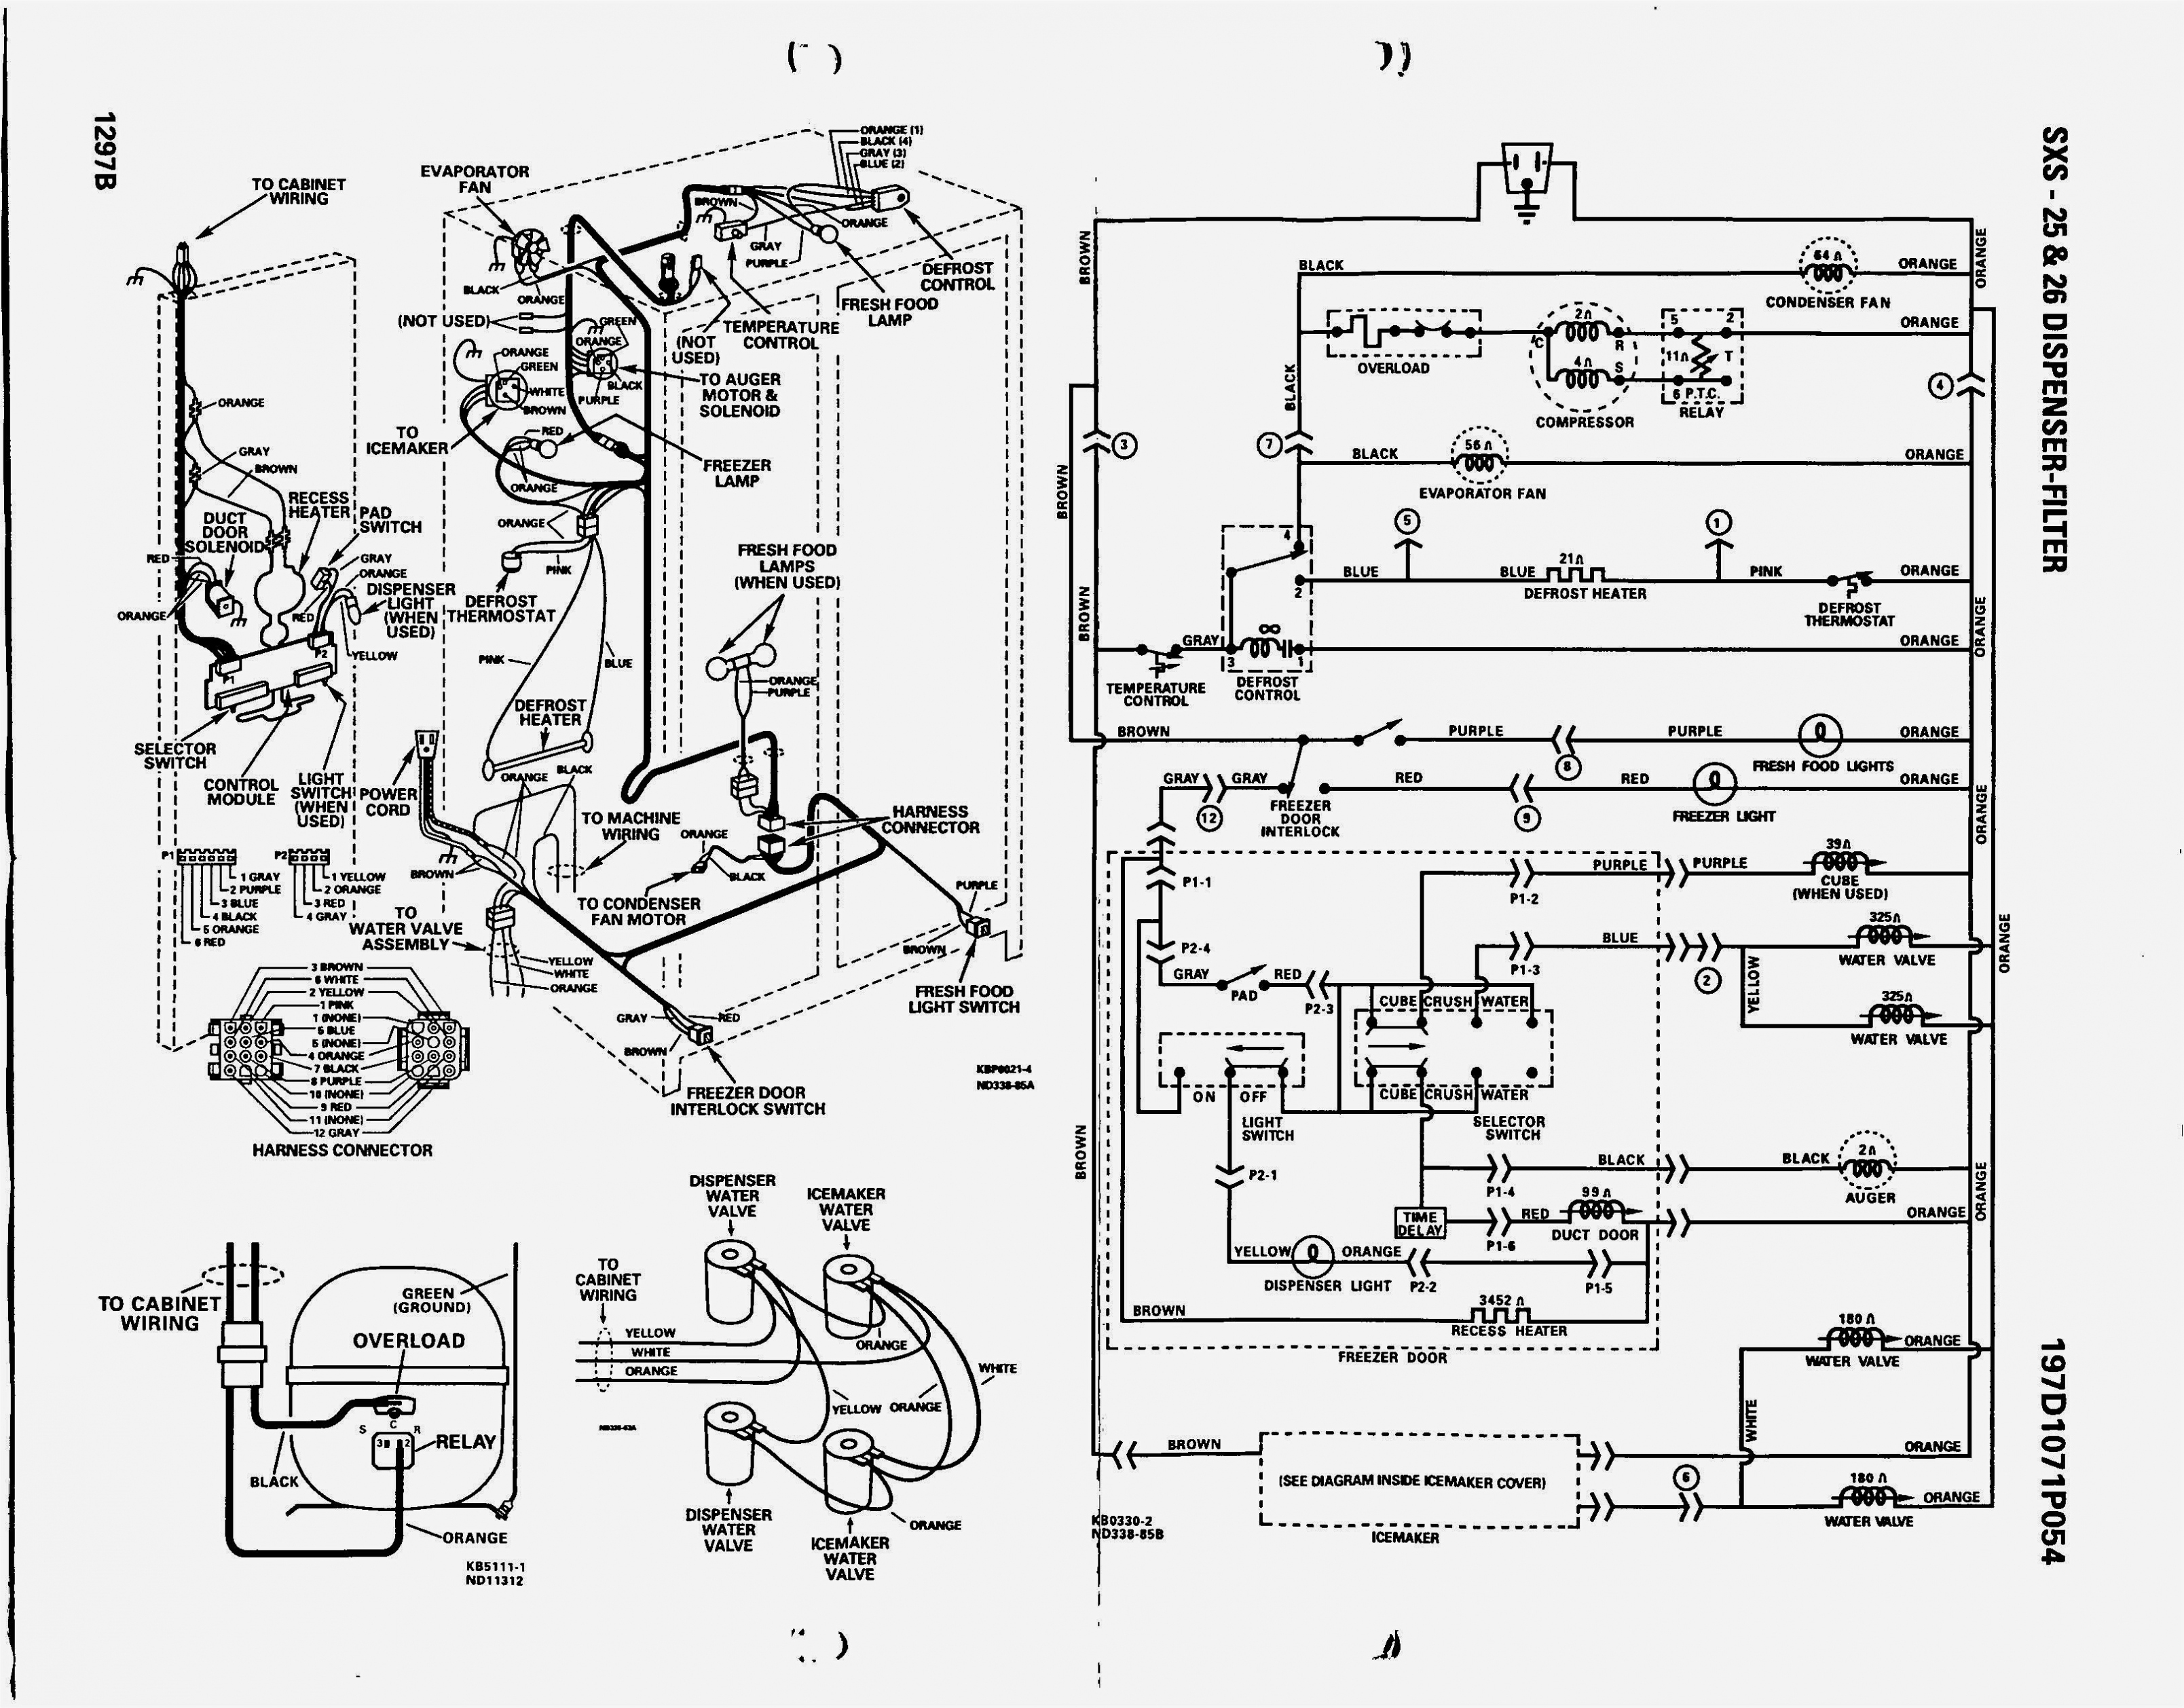 3 Wire Submersible Well Pump Wiring Diagram | Wirings Diagram  Wire Pump Diagram on 3 wire submersible well pump, submersible pump installation diagram, 3 wire well control box, 4.3 engine diagram, pump motor wiring diagram, submersible water pump diagram, water pump control box wiring diagram, submersible pump schematic diagram, submersible pump wiring diagram, duplex pump diagram, float switch wiring diagram, goulds well pump wiring diagram, utilitech pump wiring diagram, dayton pump diagram, sump pump switch wiring diagram, 3 wire pump wiring, gm fuel pump wiring diagram, sump pump control wiring diagram, vacuum pump wiring diagram,